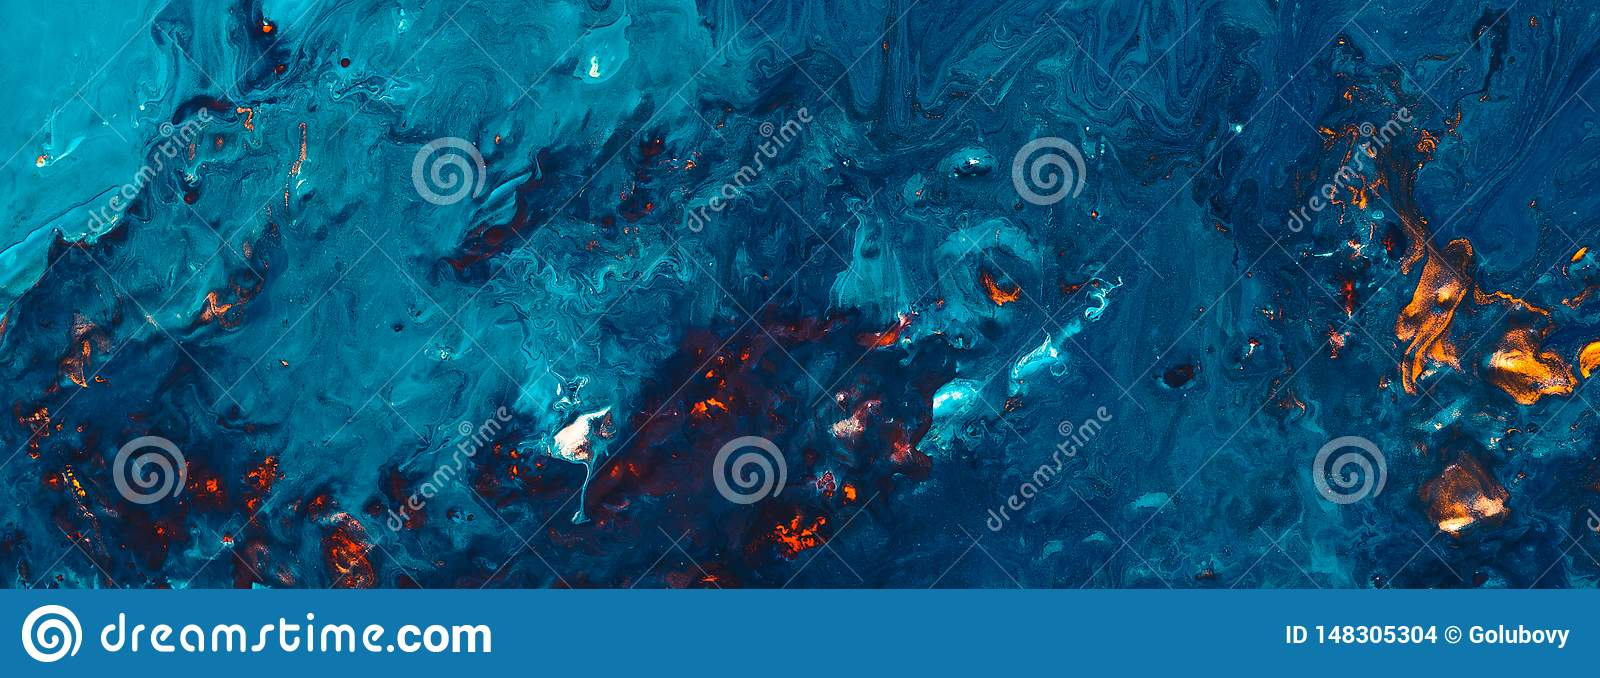 Abstract Night Forest Fire Blue Paint Background Stock Photo